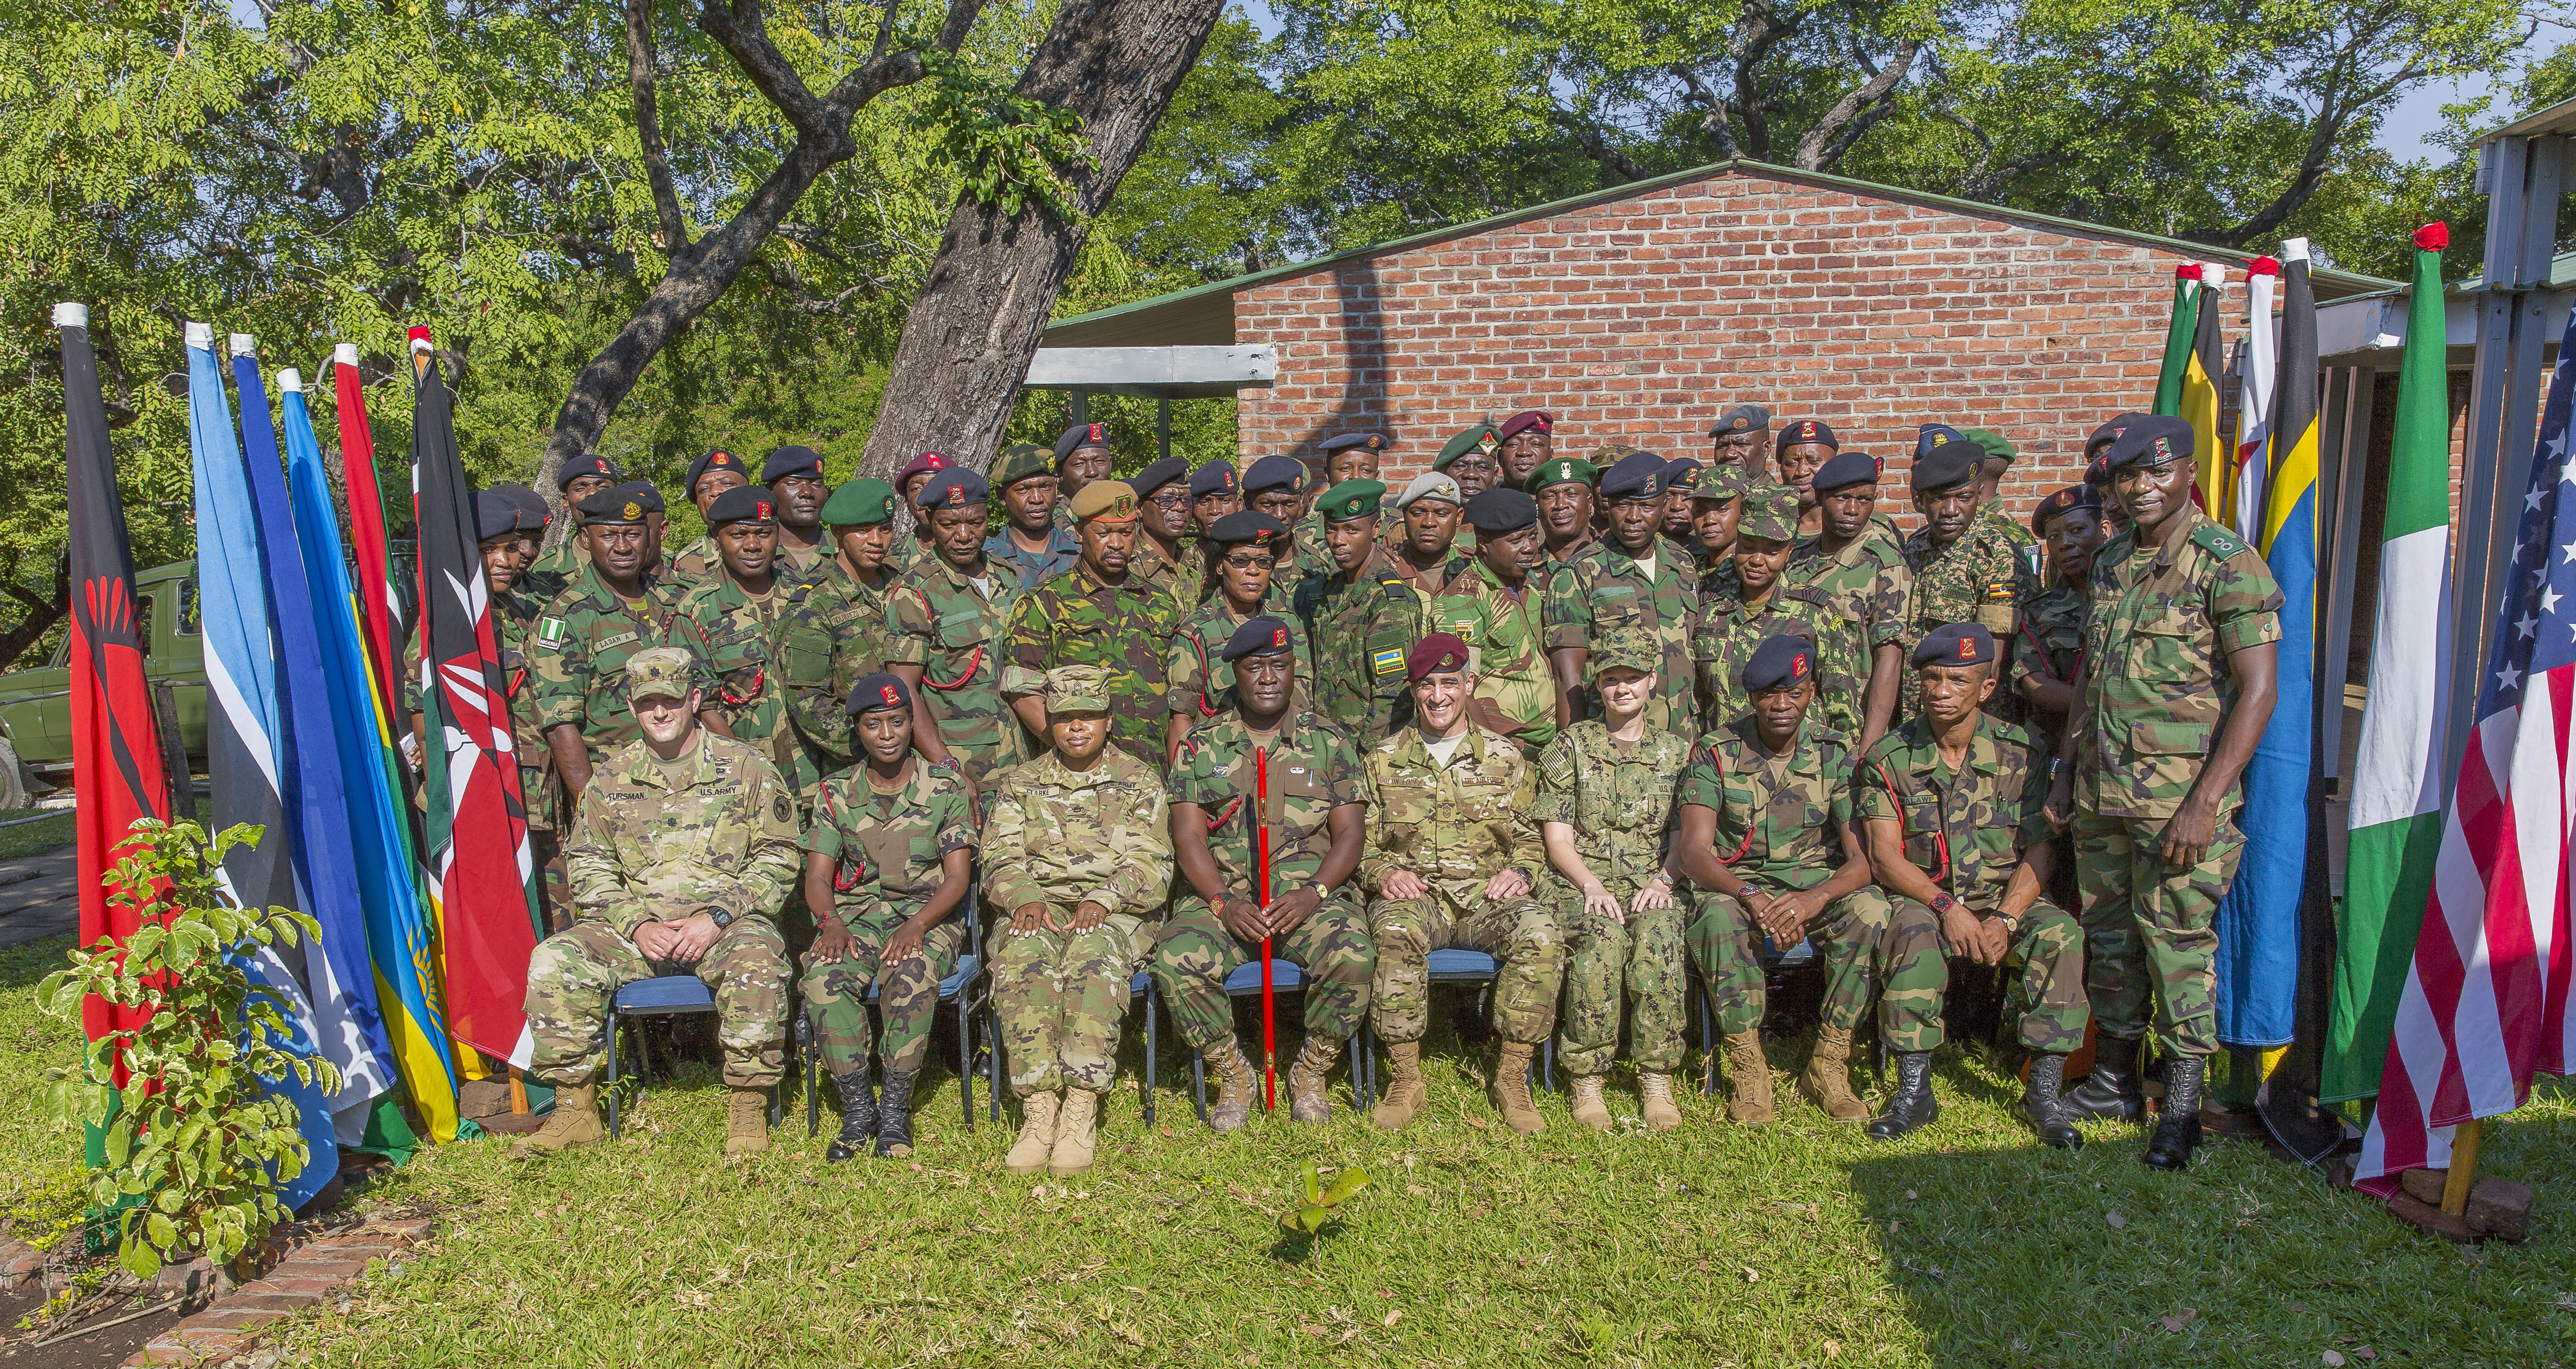 U.S. Africa Command Senior Enlisted Leader Command Chief Master Sgt. Ramon Colon-Lopez and students at the Malawi Armed Forces College Sergeant Major Academy, pose for a photo after discussing ways to improve the Malawi enlisted force in Malawi, Africa, June 1, 2018. Colon-Lopez travelled to Malawi to meet with the Malawi Defence Force, engaging with both senior officer and enlisted leadership as part of a three-day tour. The visit included follow-ups on issues addressed by the MDF during the Africa Senior Enlisted Leader Conference in November 2017, as well as assess the MDF's capability to train and sustain Peace Keeping Operations Forces.